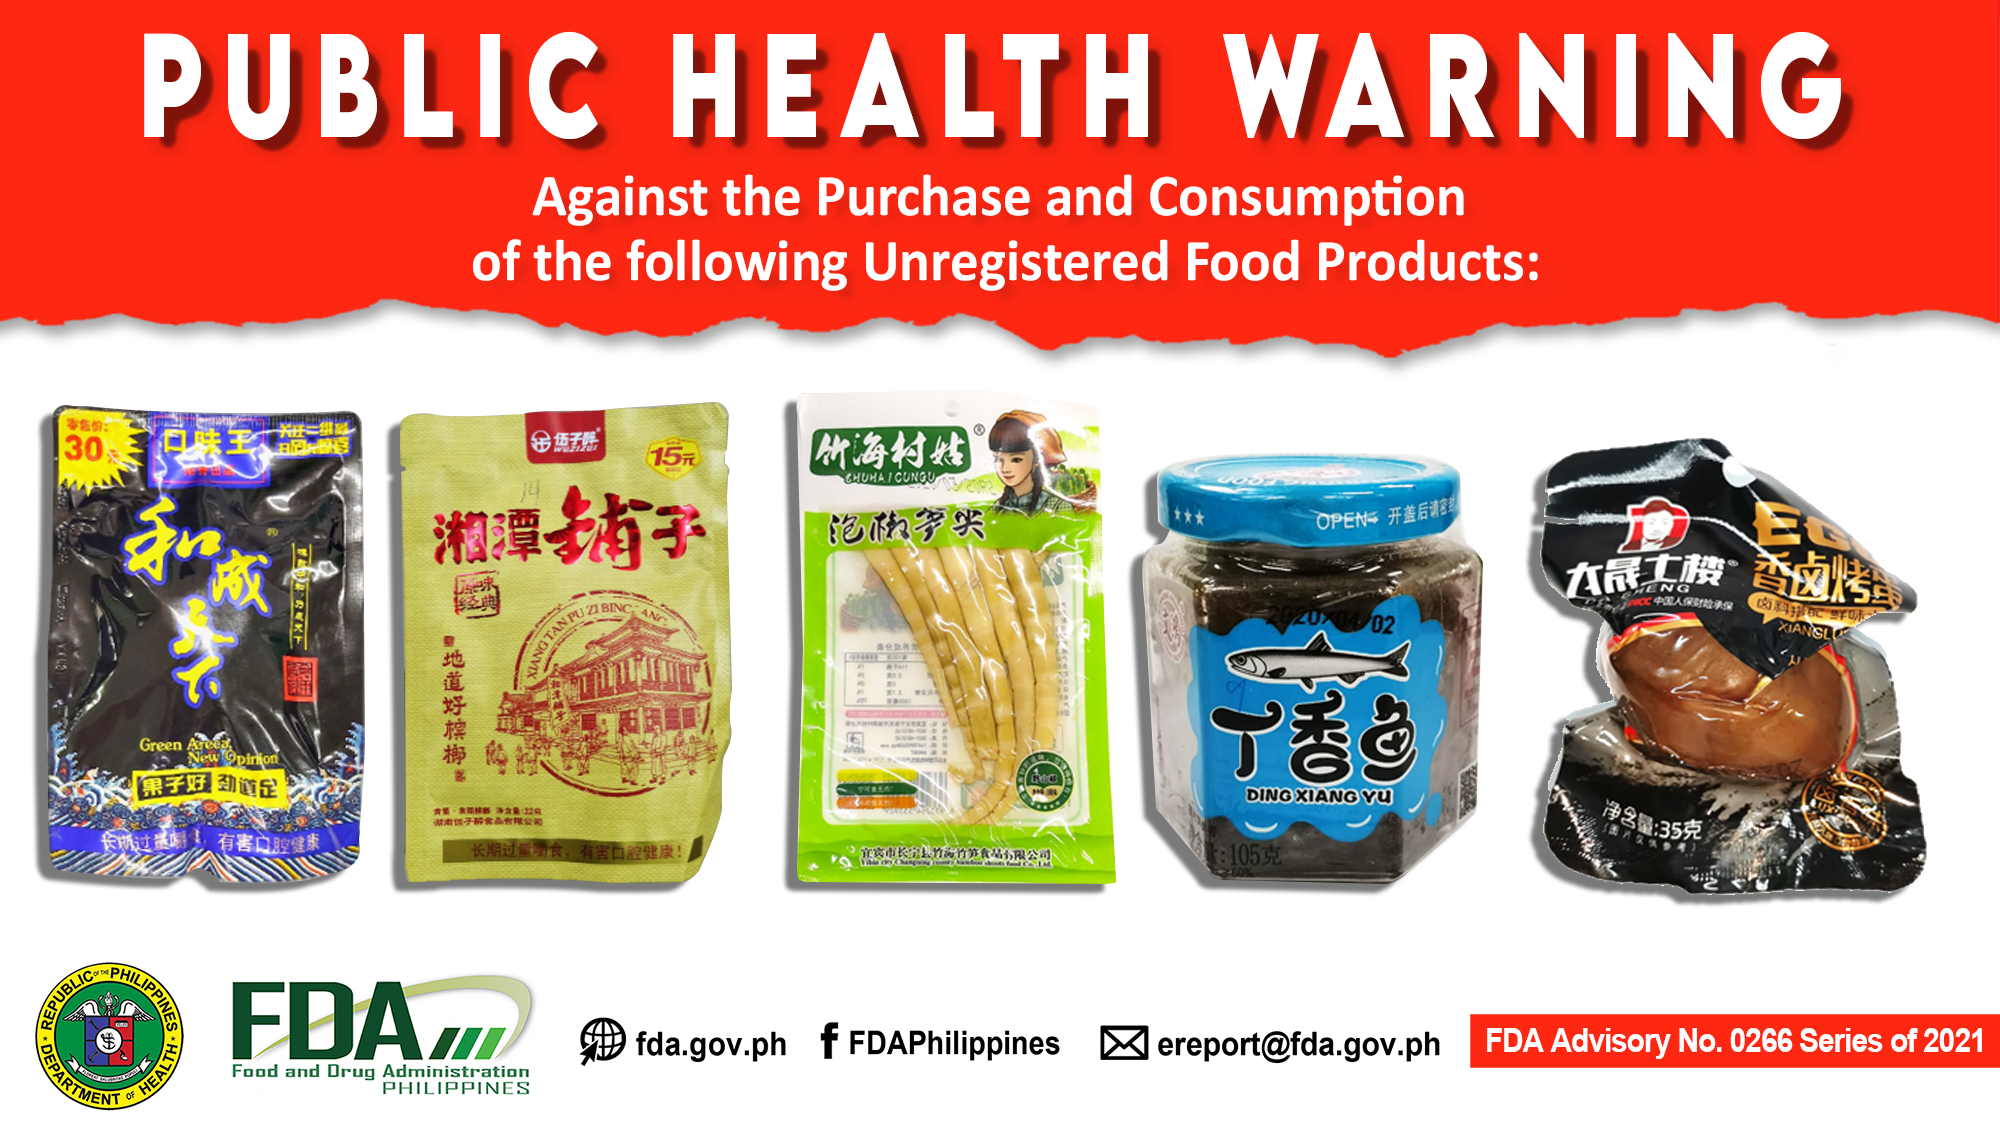 FDA Advisory No.2021-0266 || Public Health Warning Against the Purchase and Consumption of the following Unregistered Food Products: